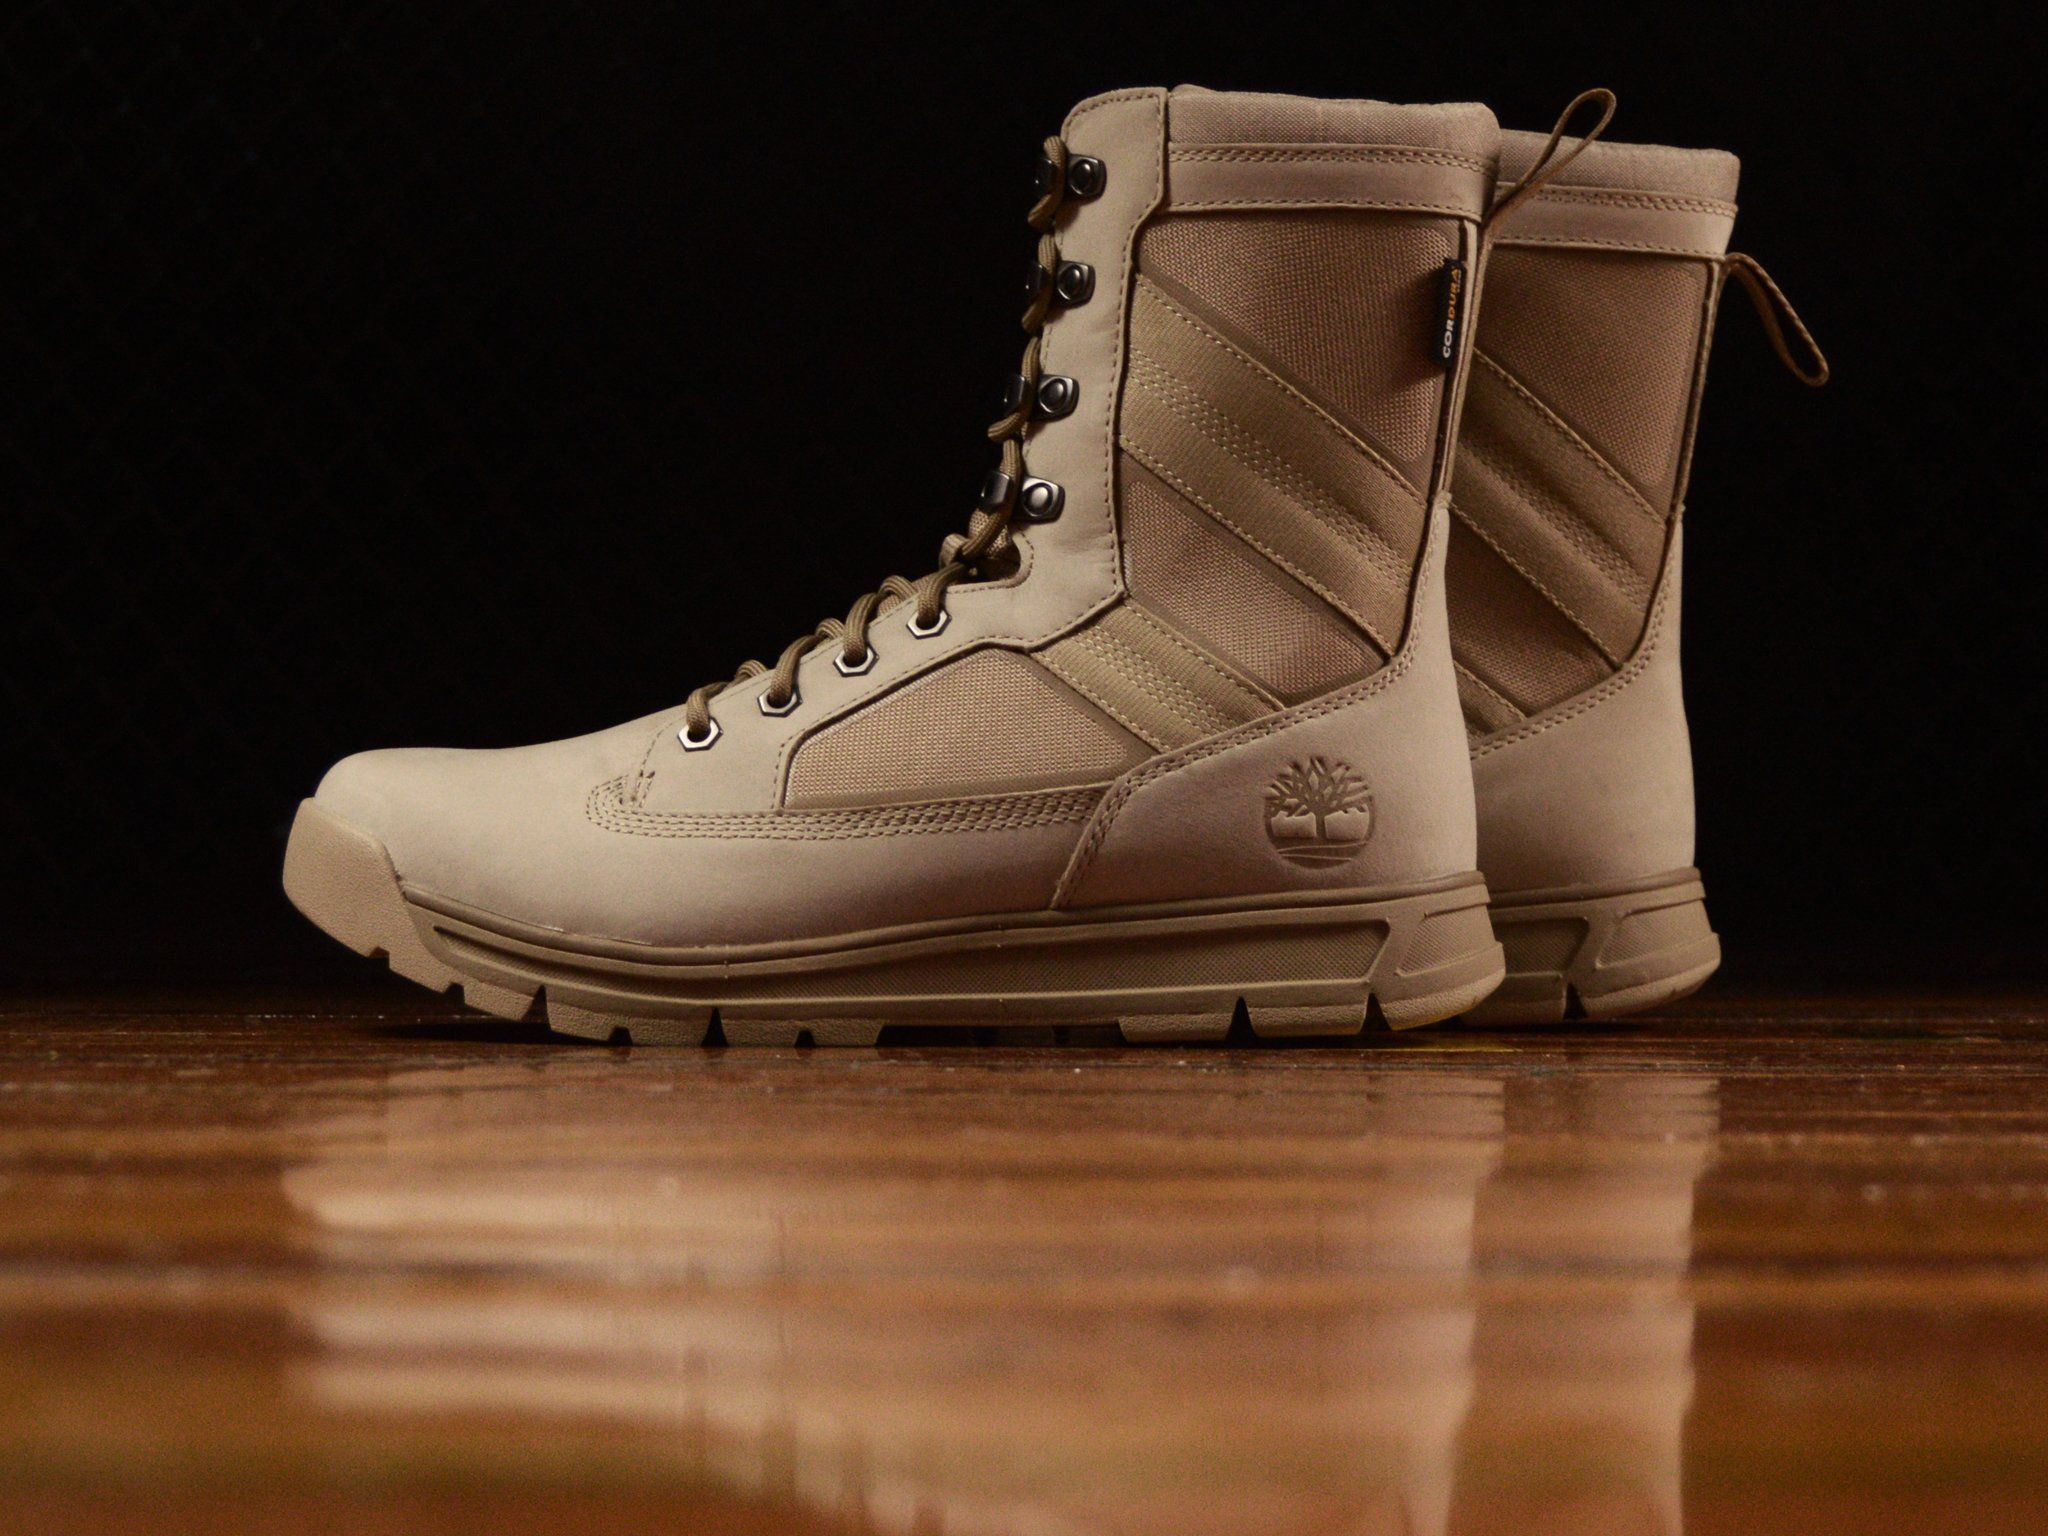 Vueltas y vueltas harto Puede ser calculado  Men's Timberland 8 Inch Field Guide Boots [TB0A1NHC] | Boots, Timberland,  Combat boots